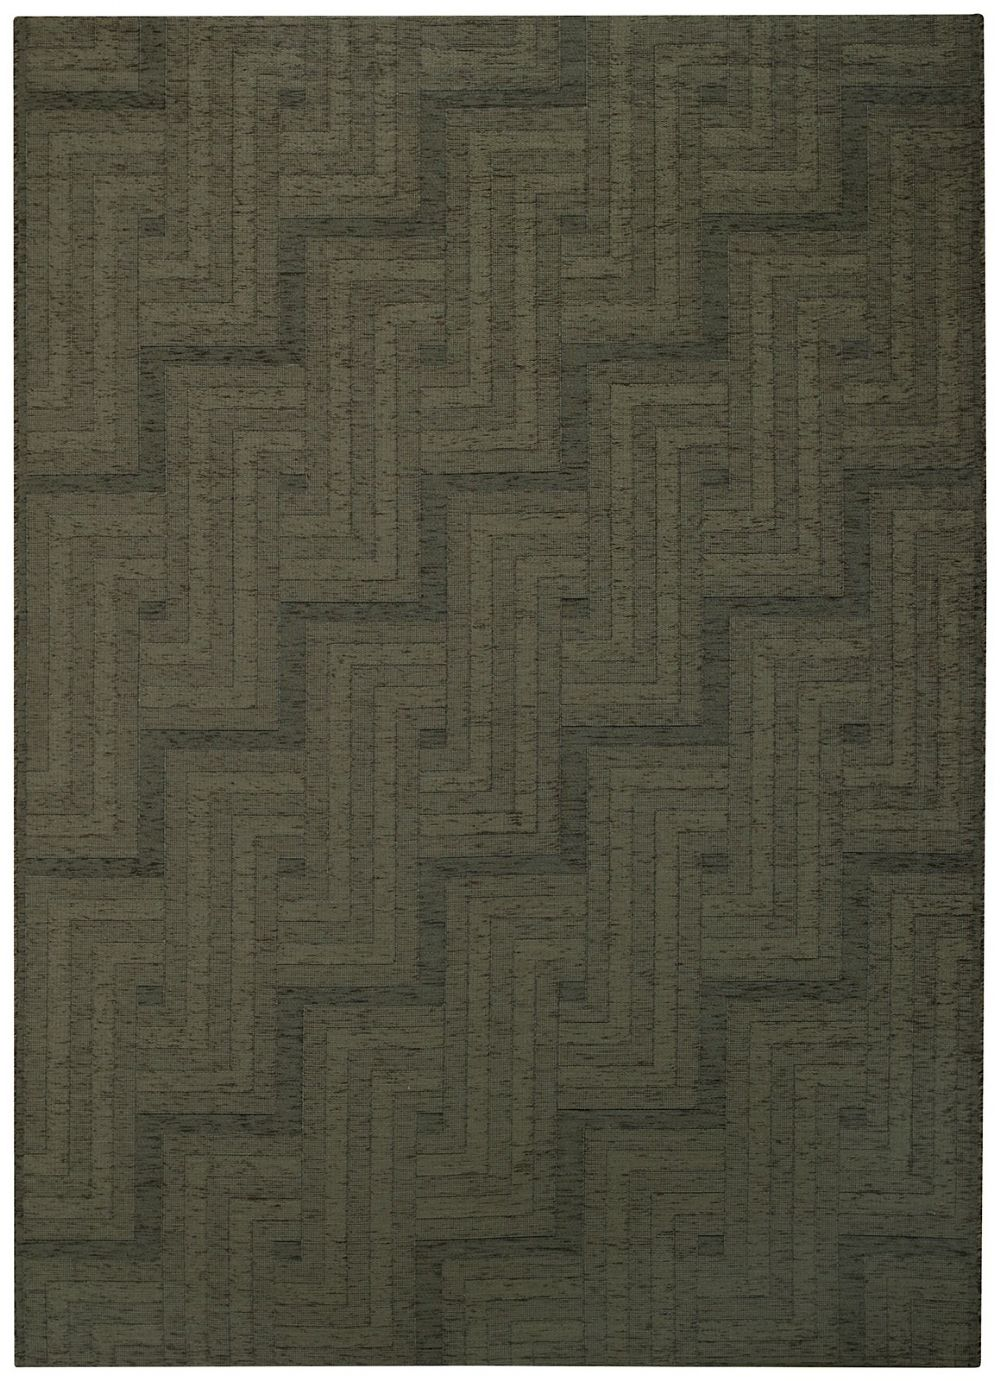 capel walkover-step contemporary area rug collection